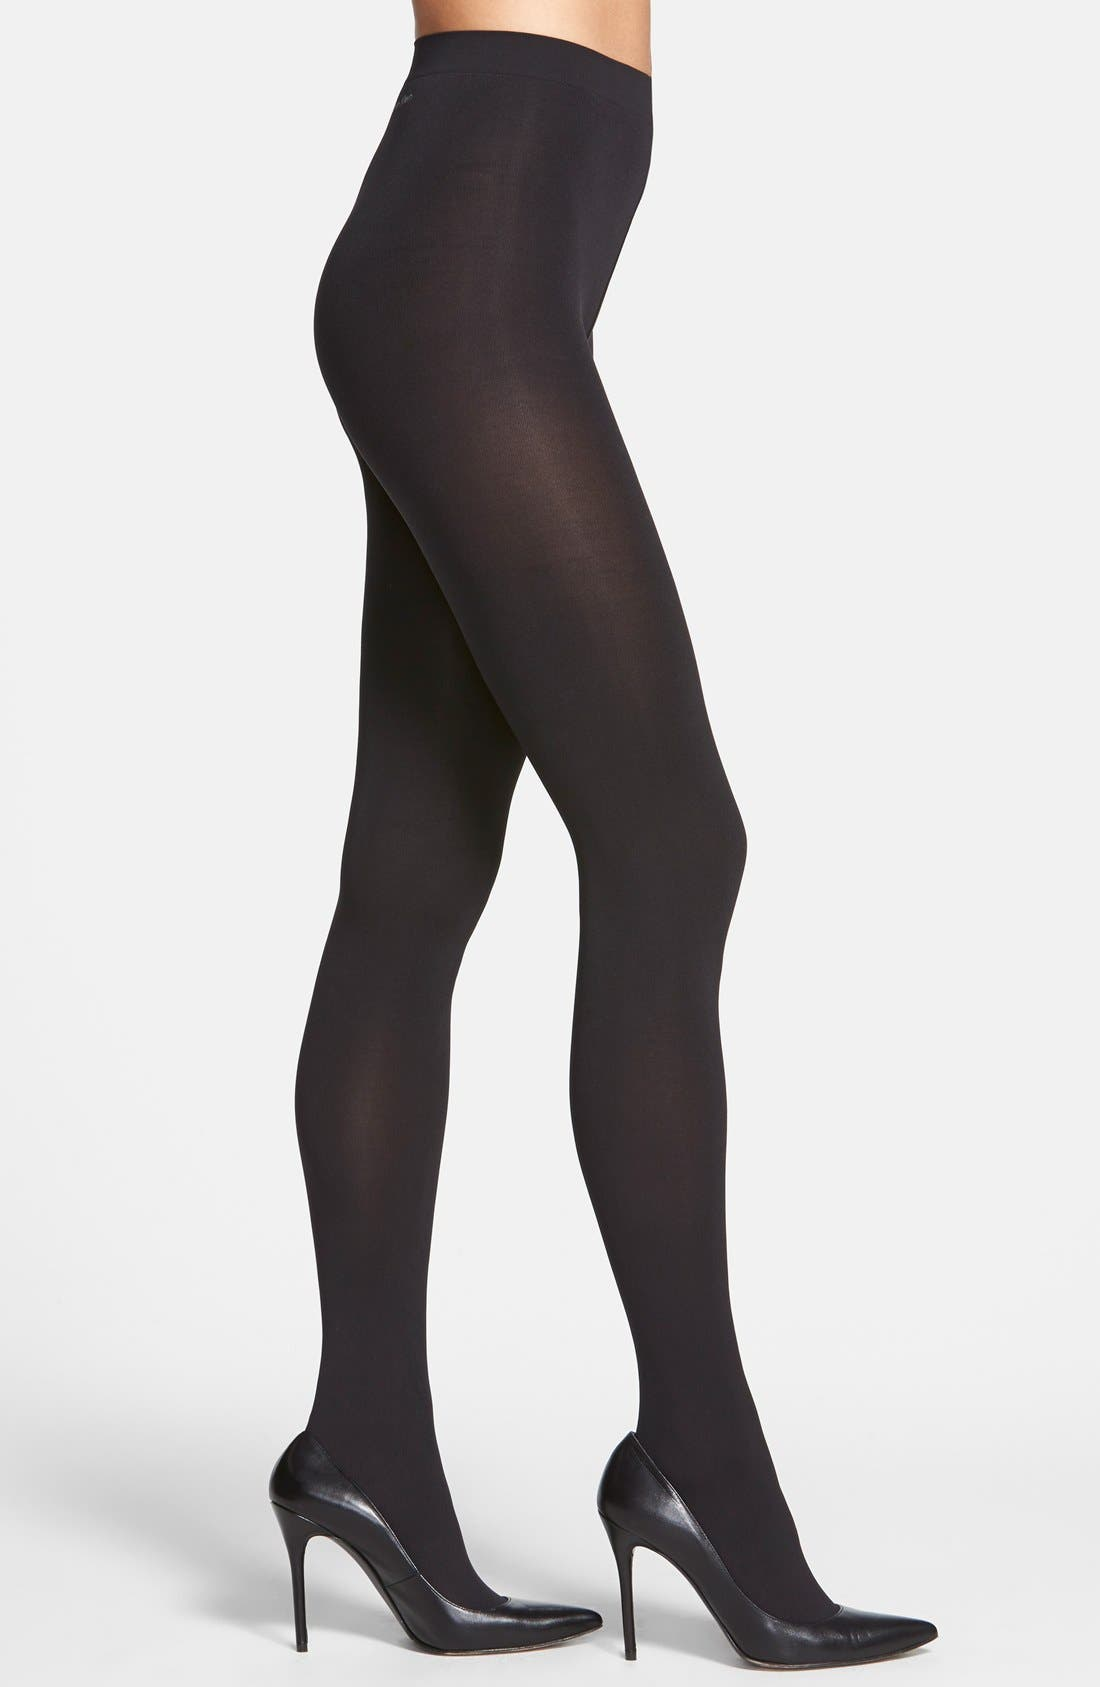 'Infinite' Opaque Tights,                             Main thumbnail 1, color,                             001